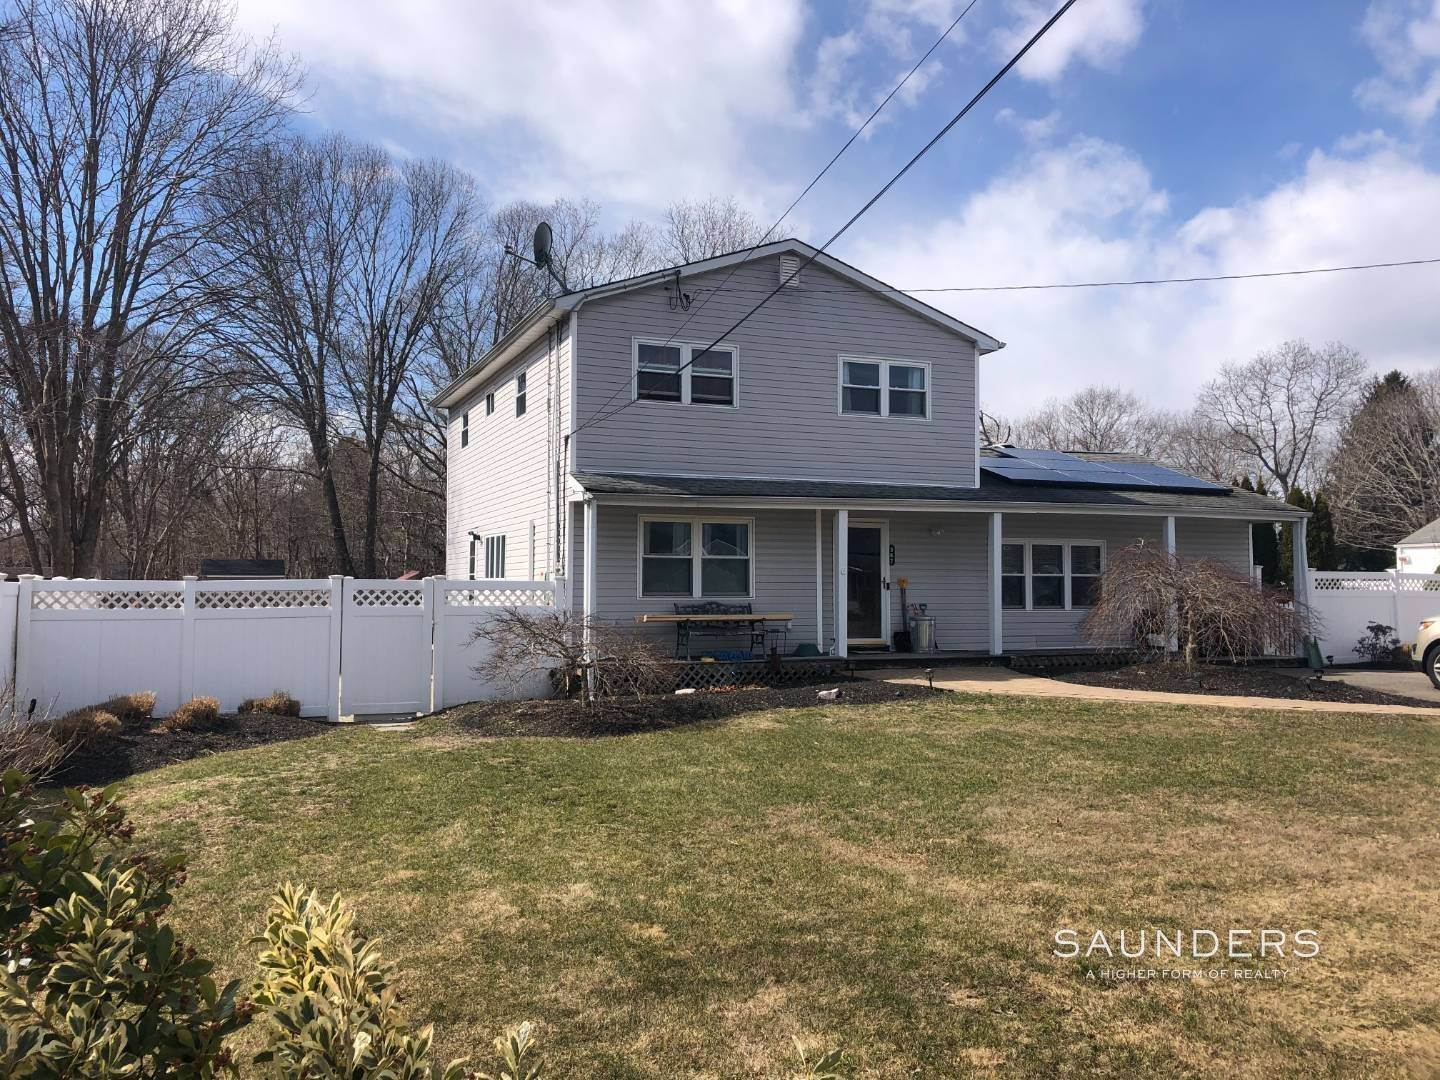 Single Family Homes for Sale at Turn Key 4 Bedroom Home With Legal 1 Bedroom Accessary Apartment 367 Wellwood Drive, Shirley, NY 11967